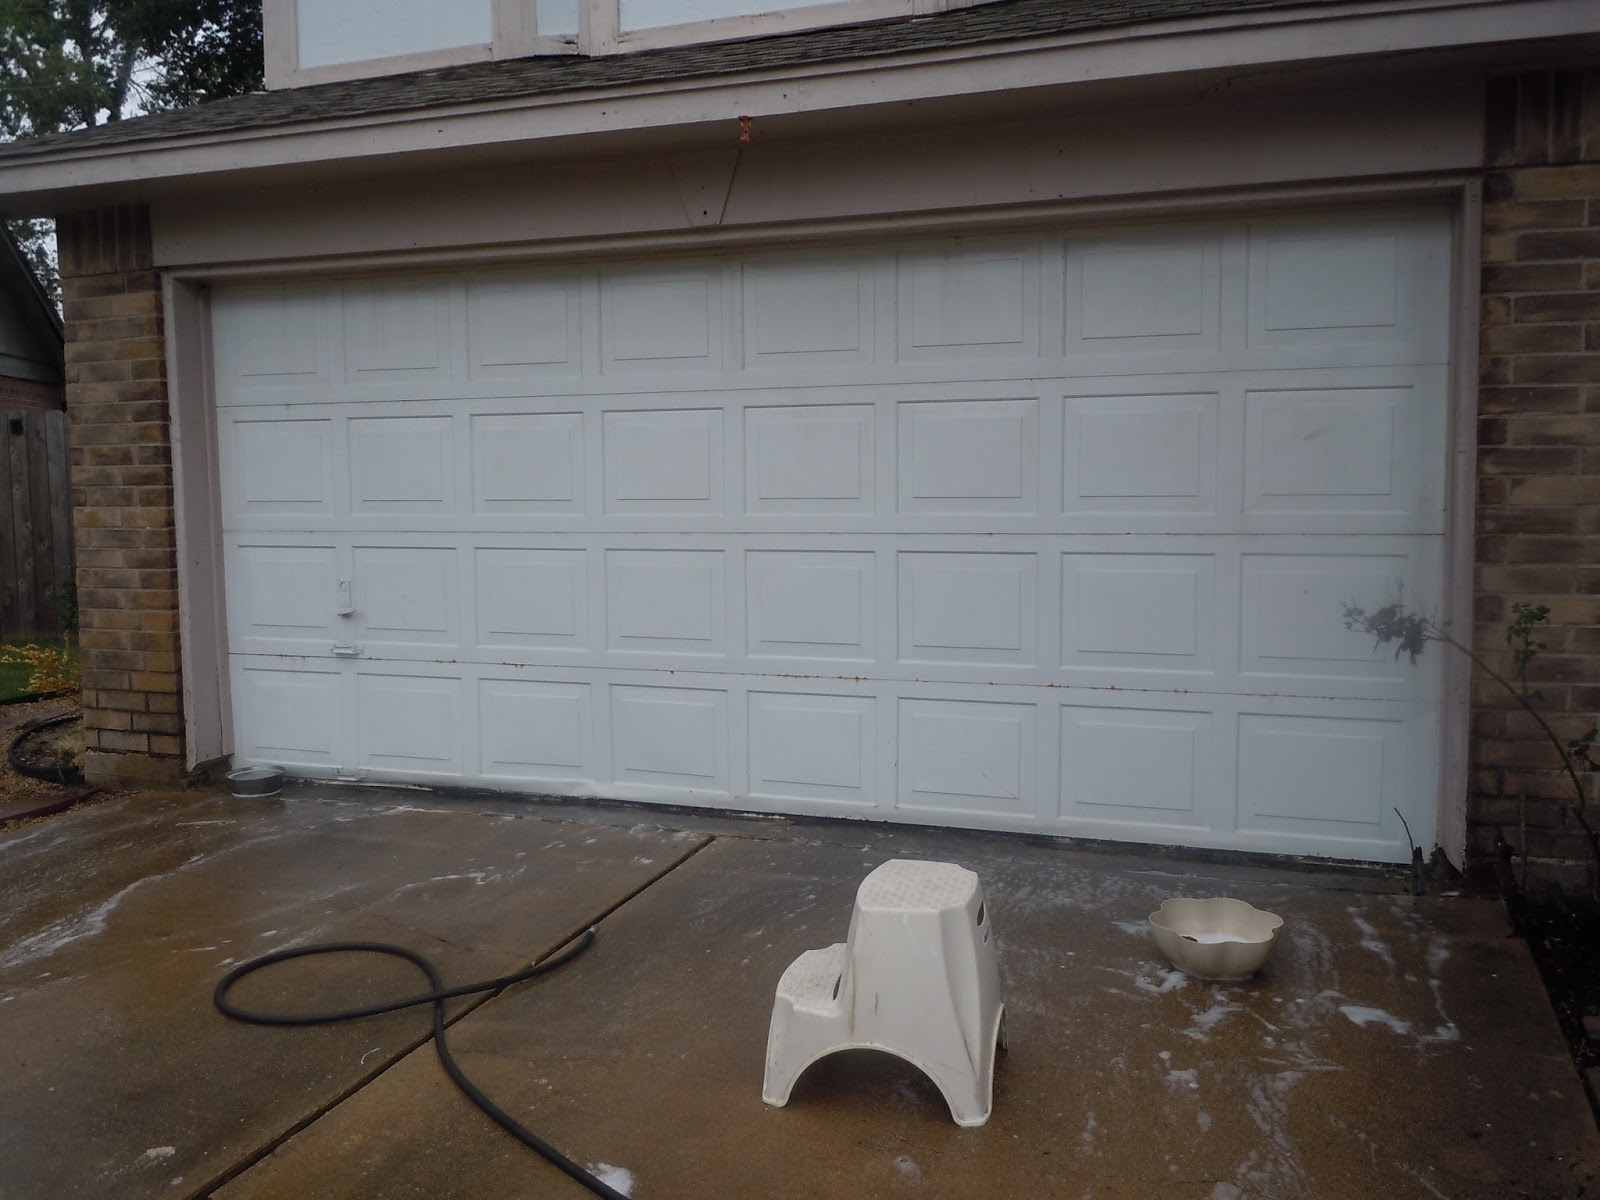 1200 #5A4C3F So The Very 1st Thing I Did Was Clean The Garage Door! pic First Garage Doors 36211600